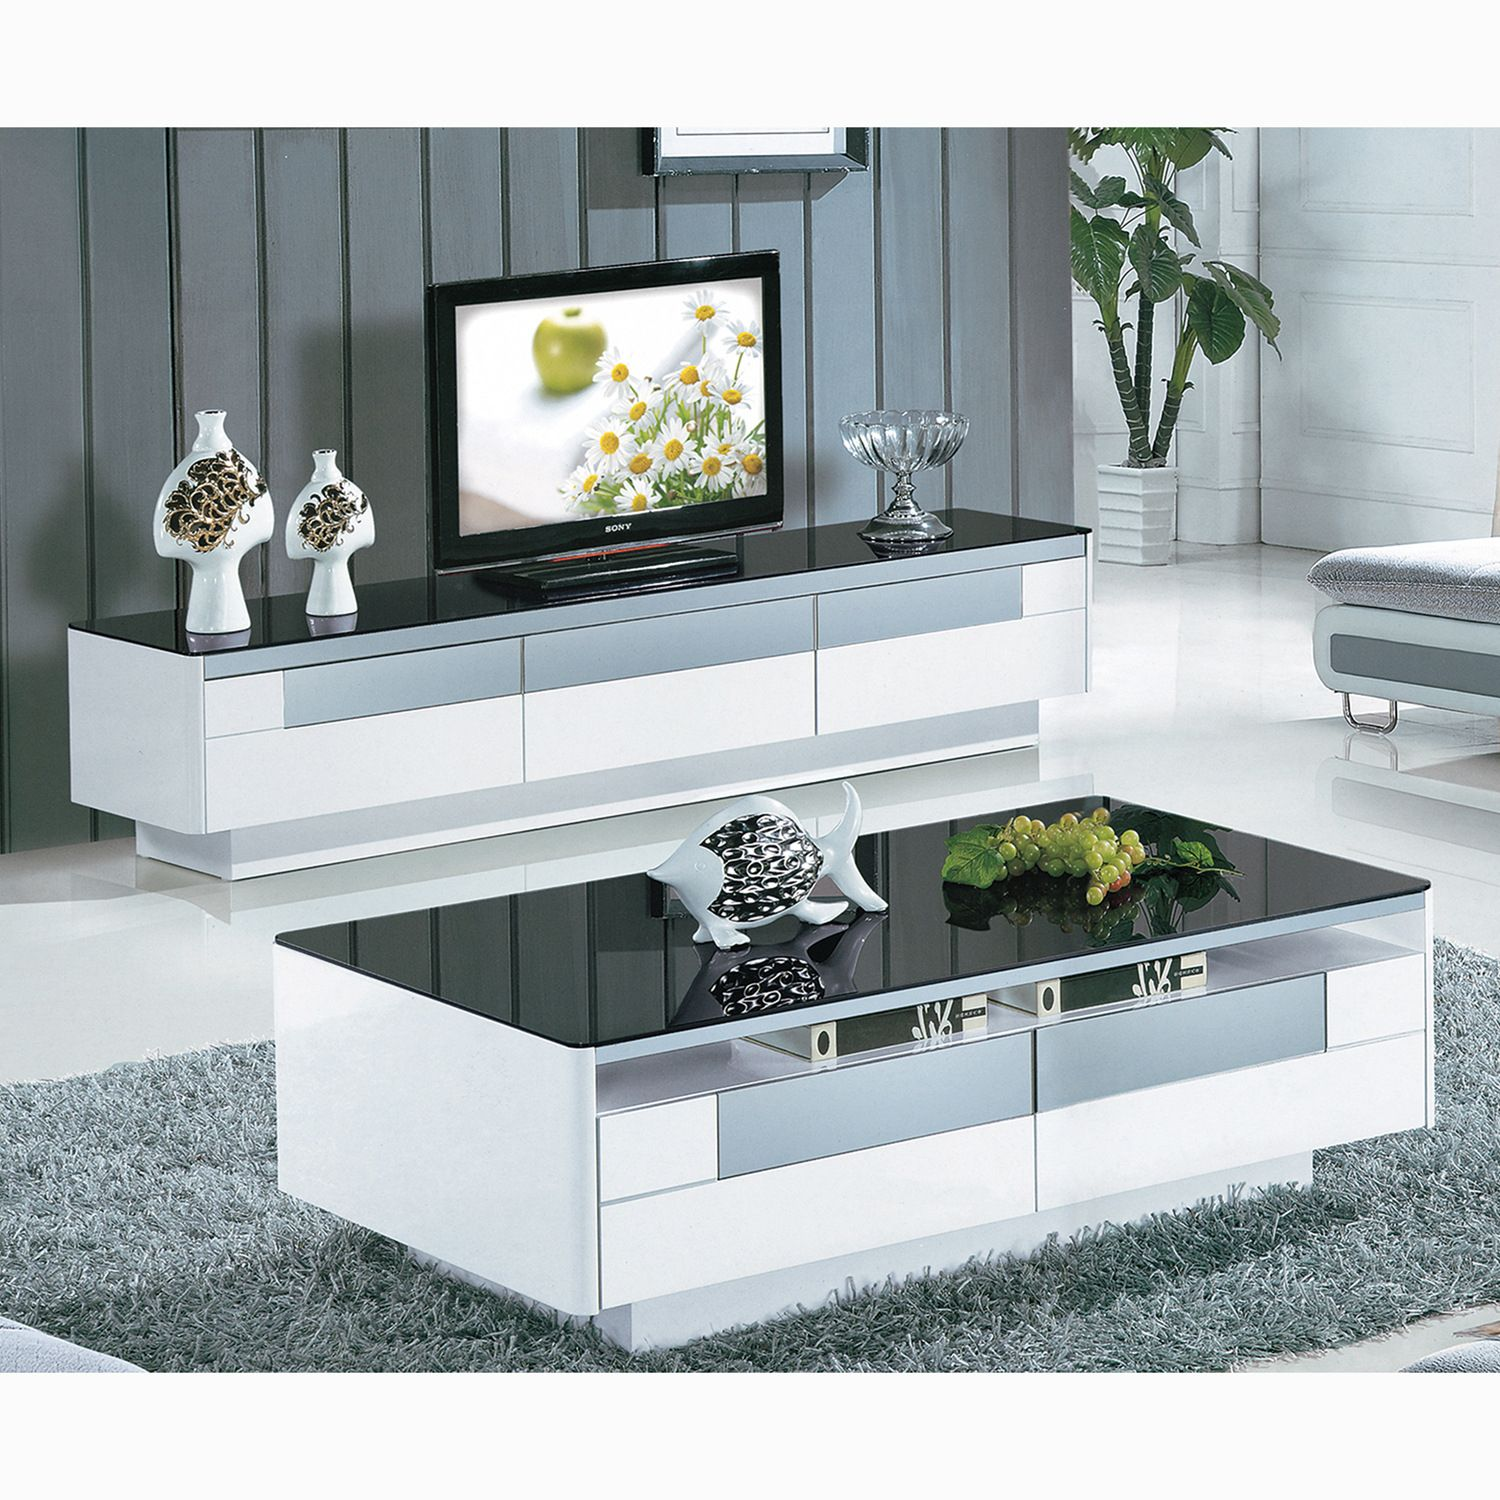 Tv Stand And Coffee Table Set Download Pack Tube Black Finish Horn Coffee End Tabl Tv Stand And Coffee Table Tv Stand And Coffee Table Set Coffee Table Setting [ 1500 x 1500 Pixel ]